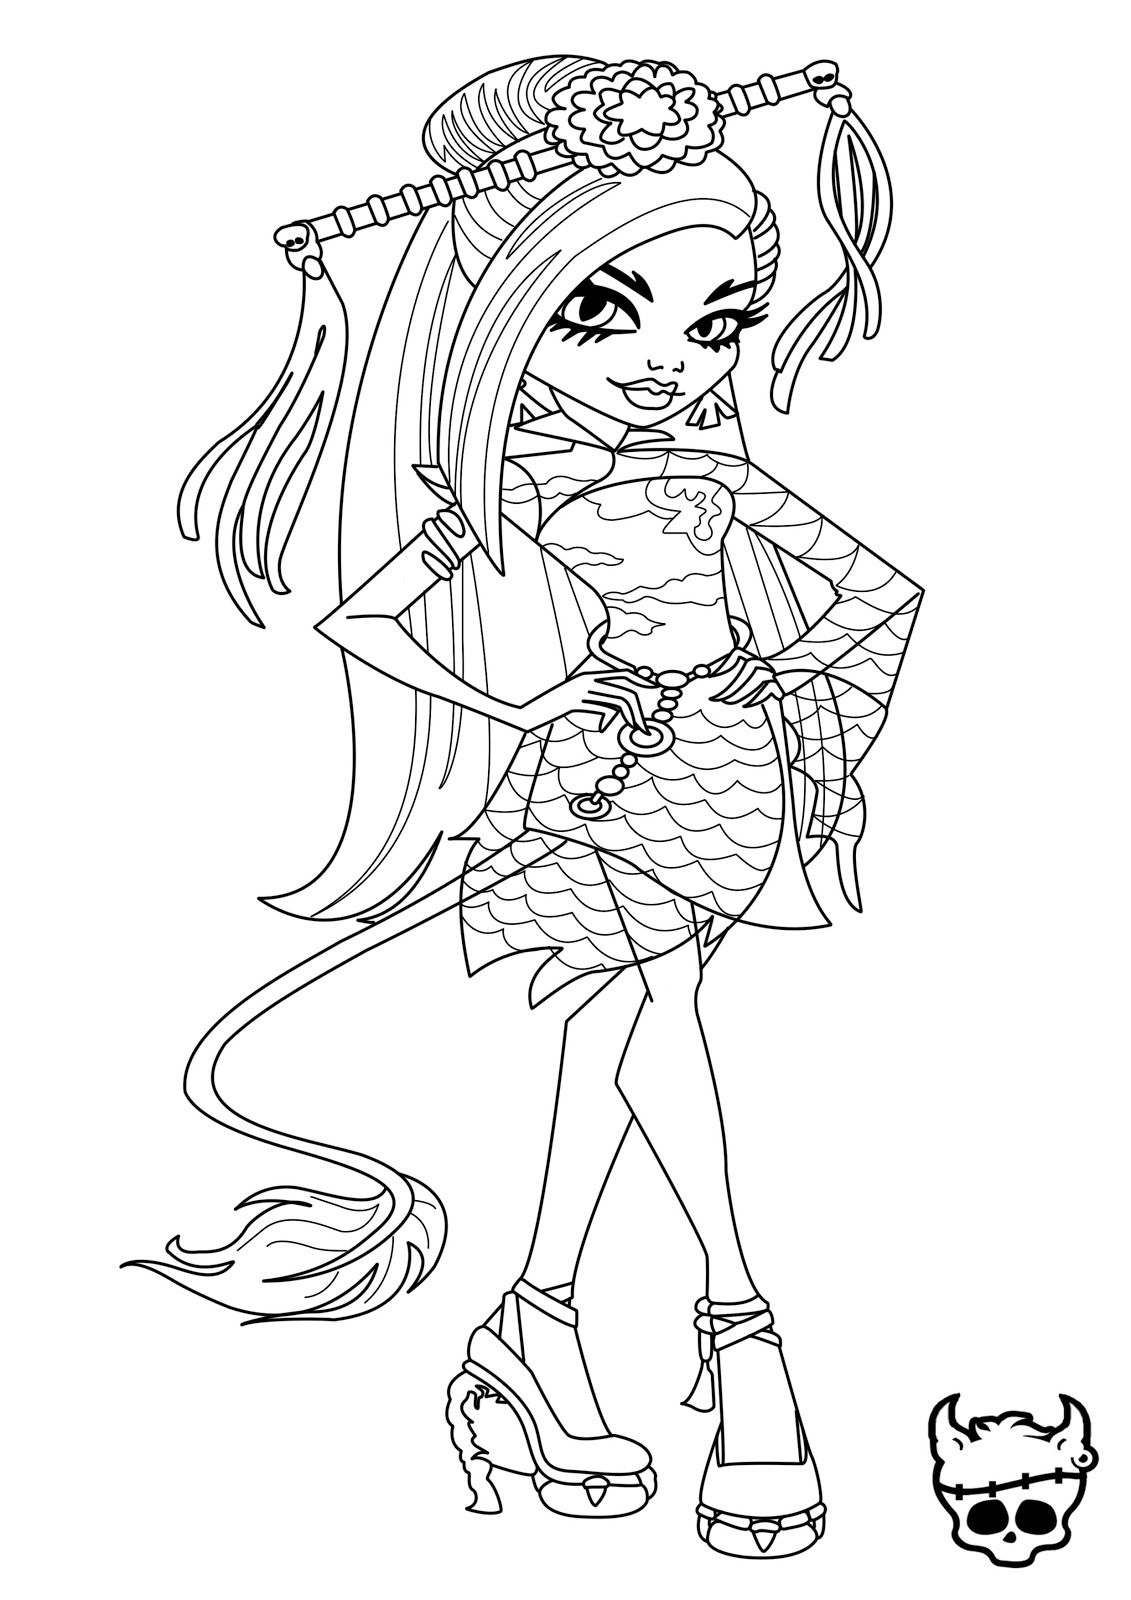 monster high doll coloring pages 56 best images about monster high on pinterest monster doll coloring high pages monster